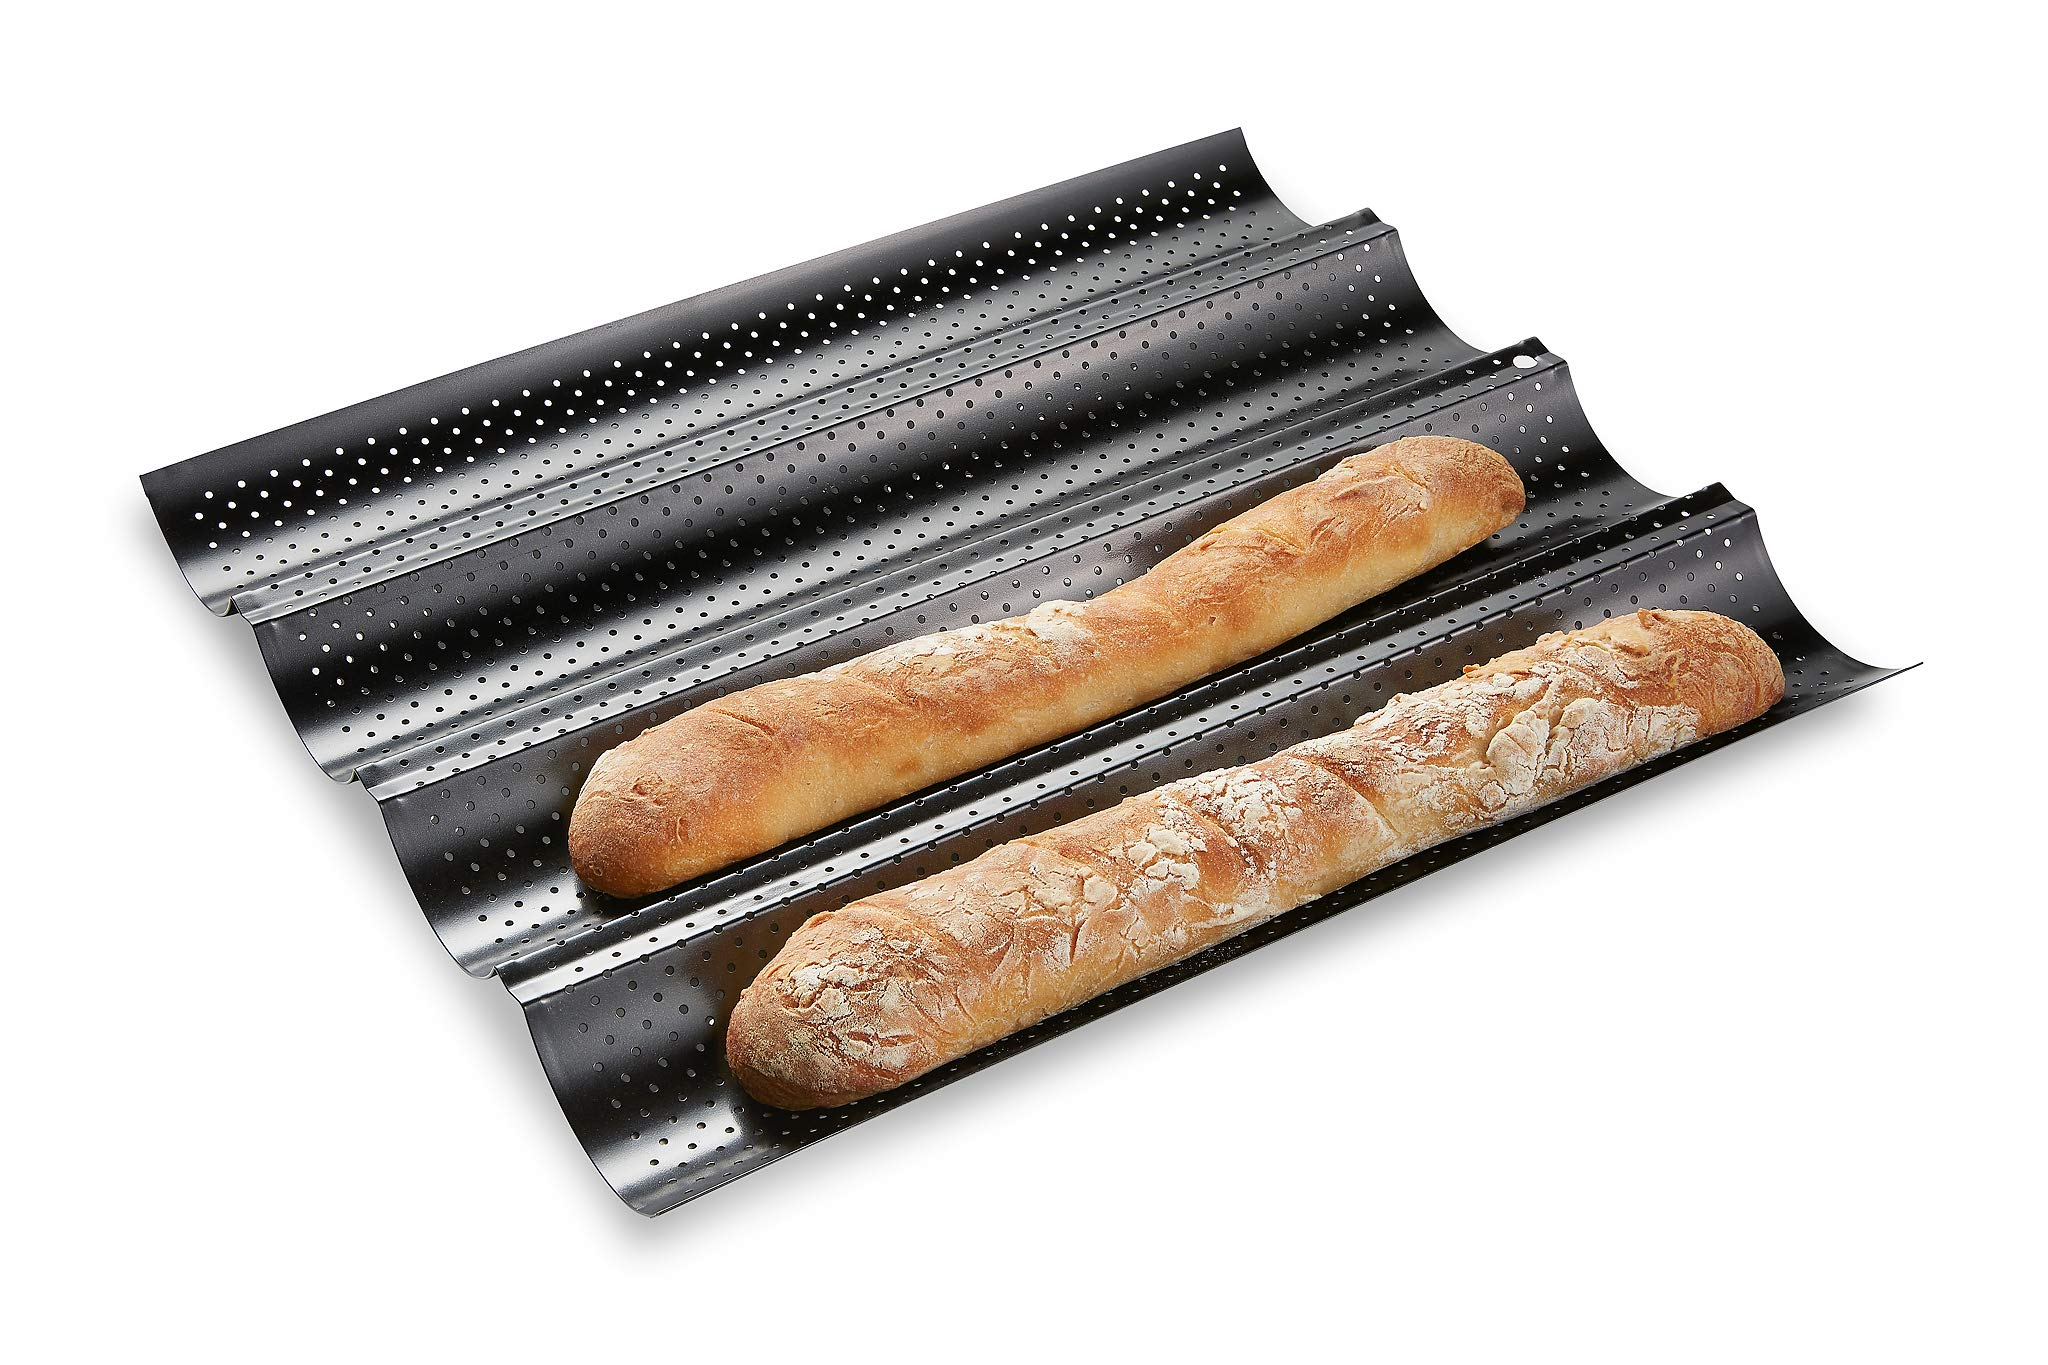 French Bread Baking Pan , Premium Metallic Carbon Steel Baguette Nonstick Tray Baker Board, Perforated Italian Sub Long Roll, Baggette Sourdough Loaf Professional Kitchen, Bakers Dough Making Mold by FlexWare